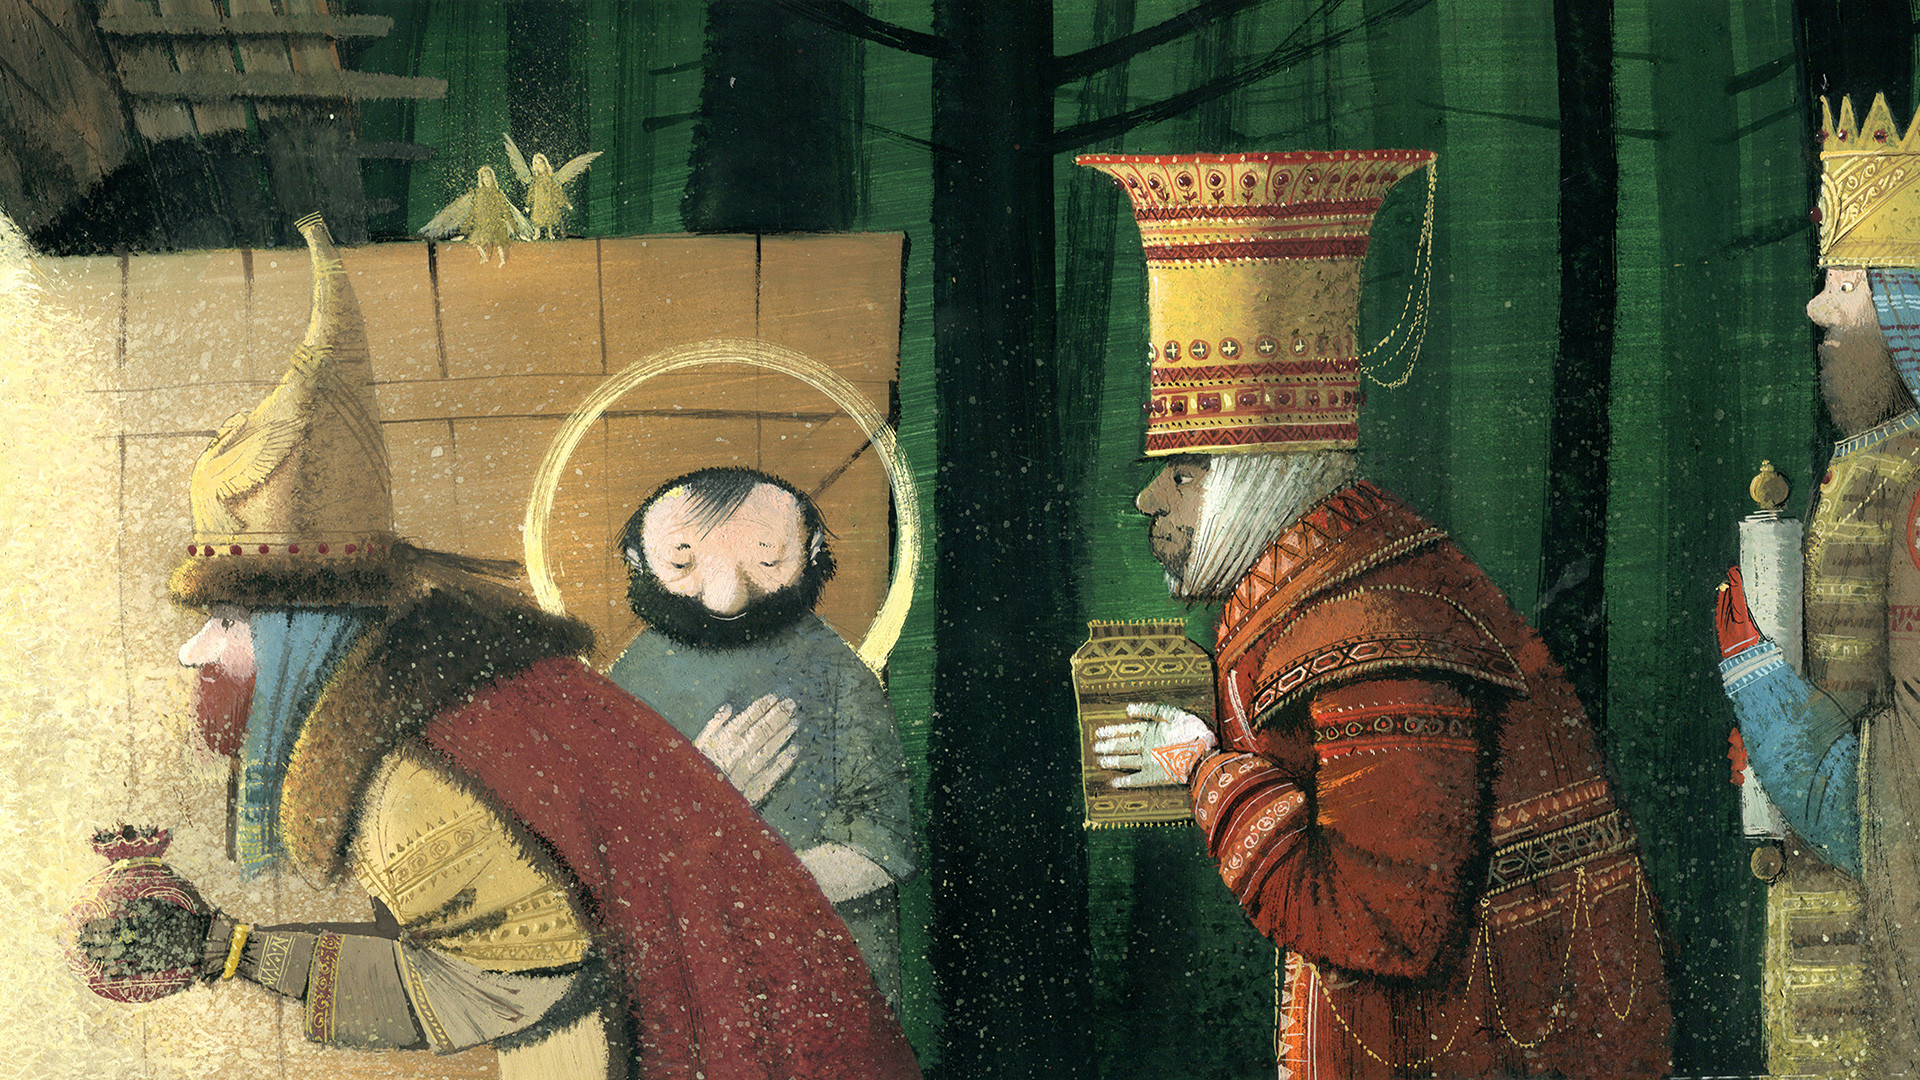 The Ox And The Ass At The Manger by Jules Supervielle (Nikea Books, 2013)